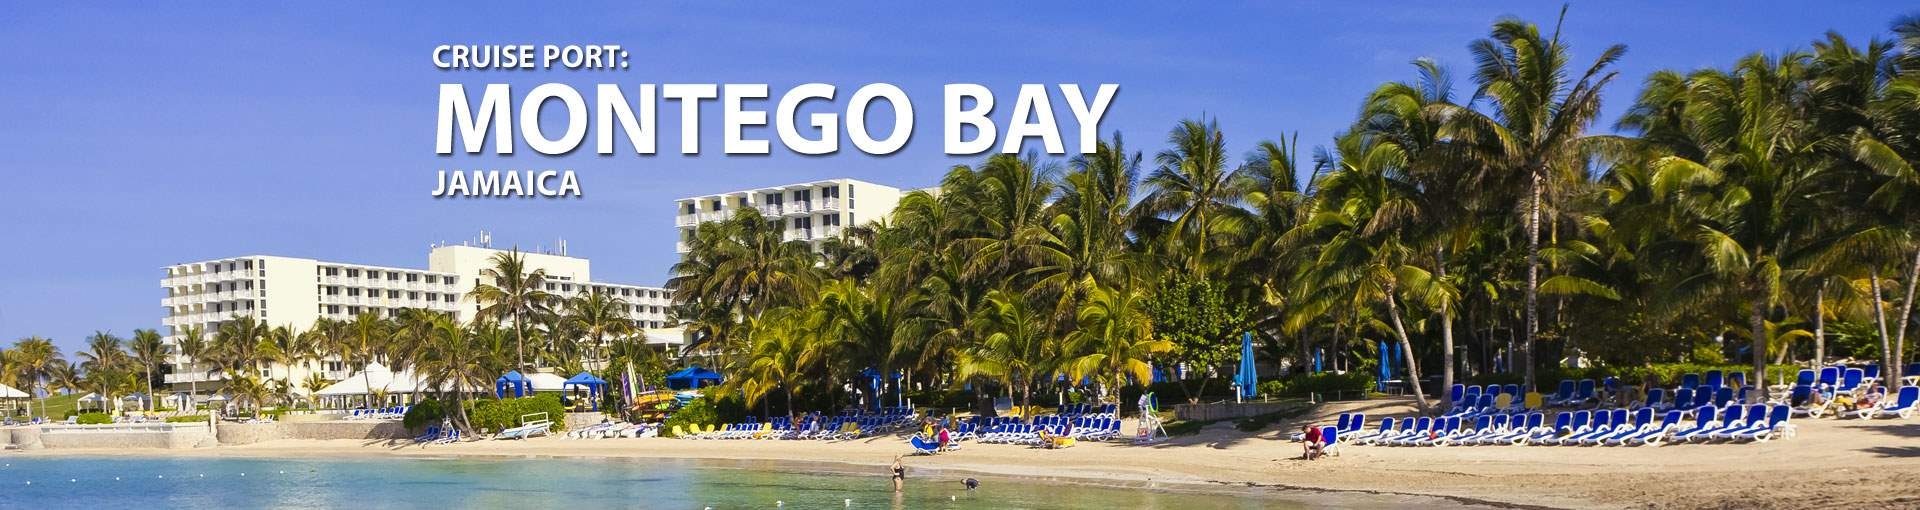 Cruises to Montego Bay, Jamaica